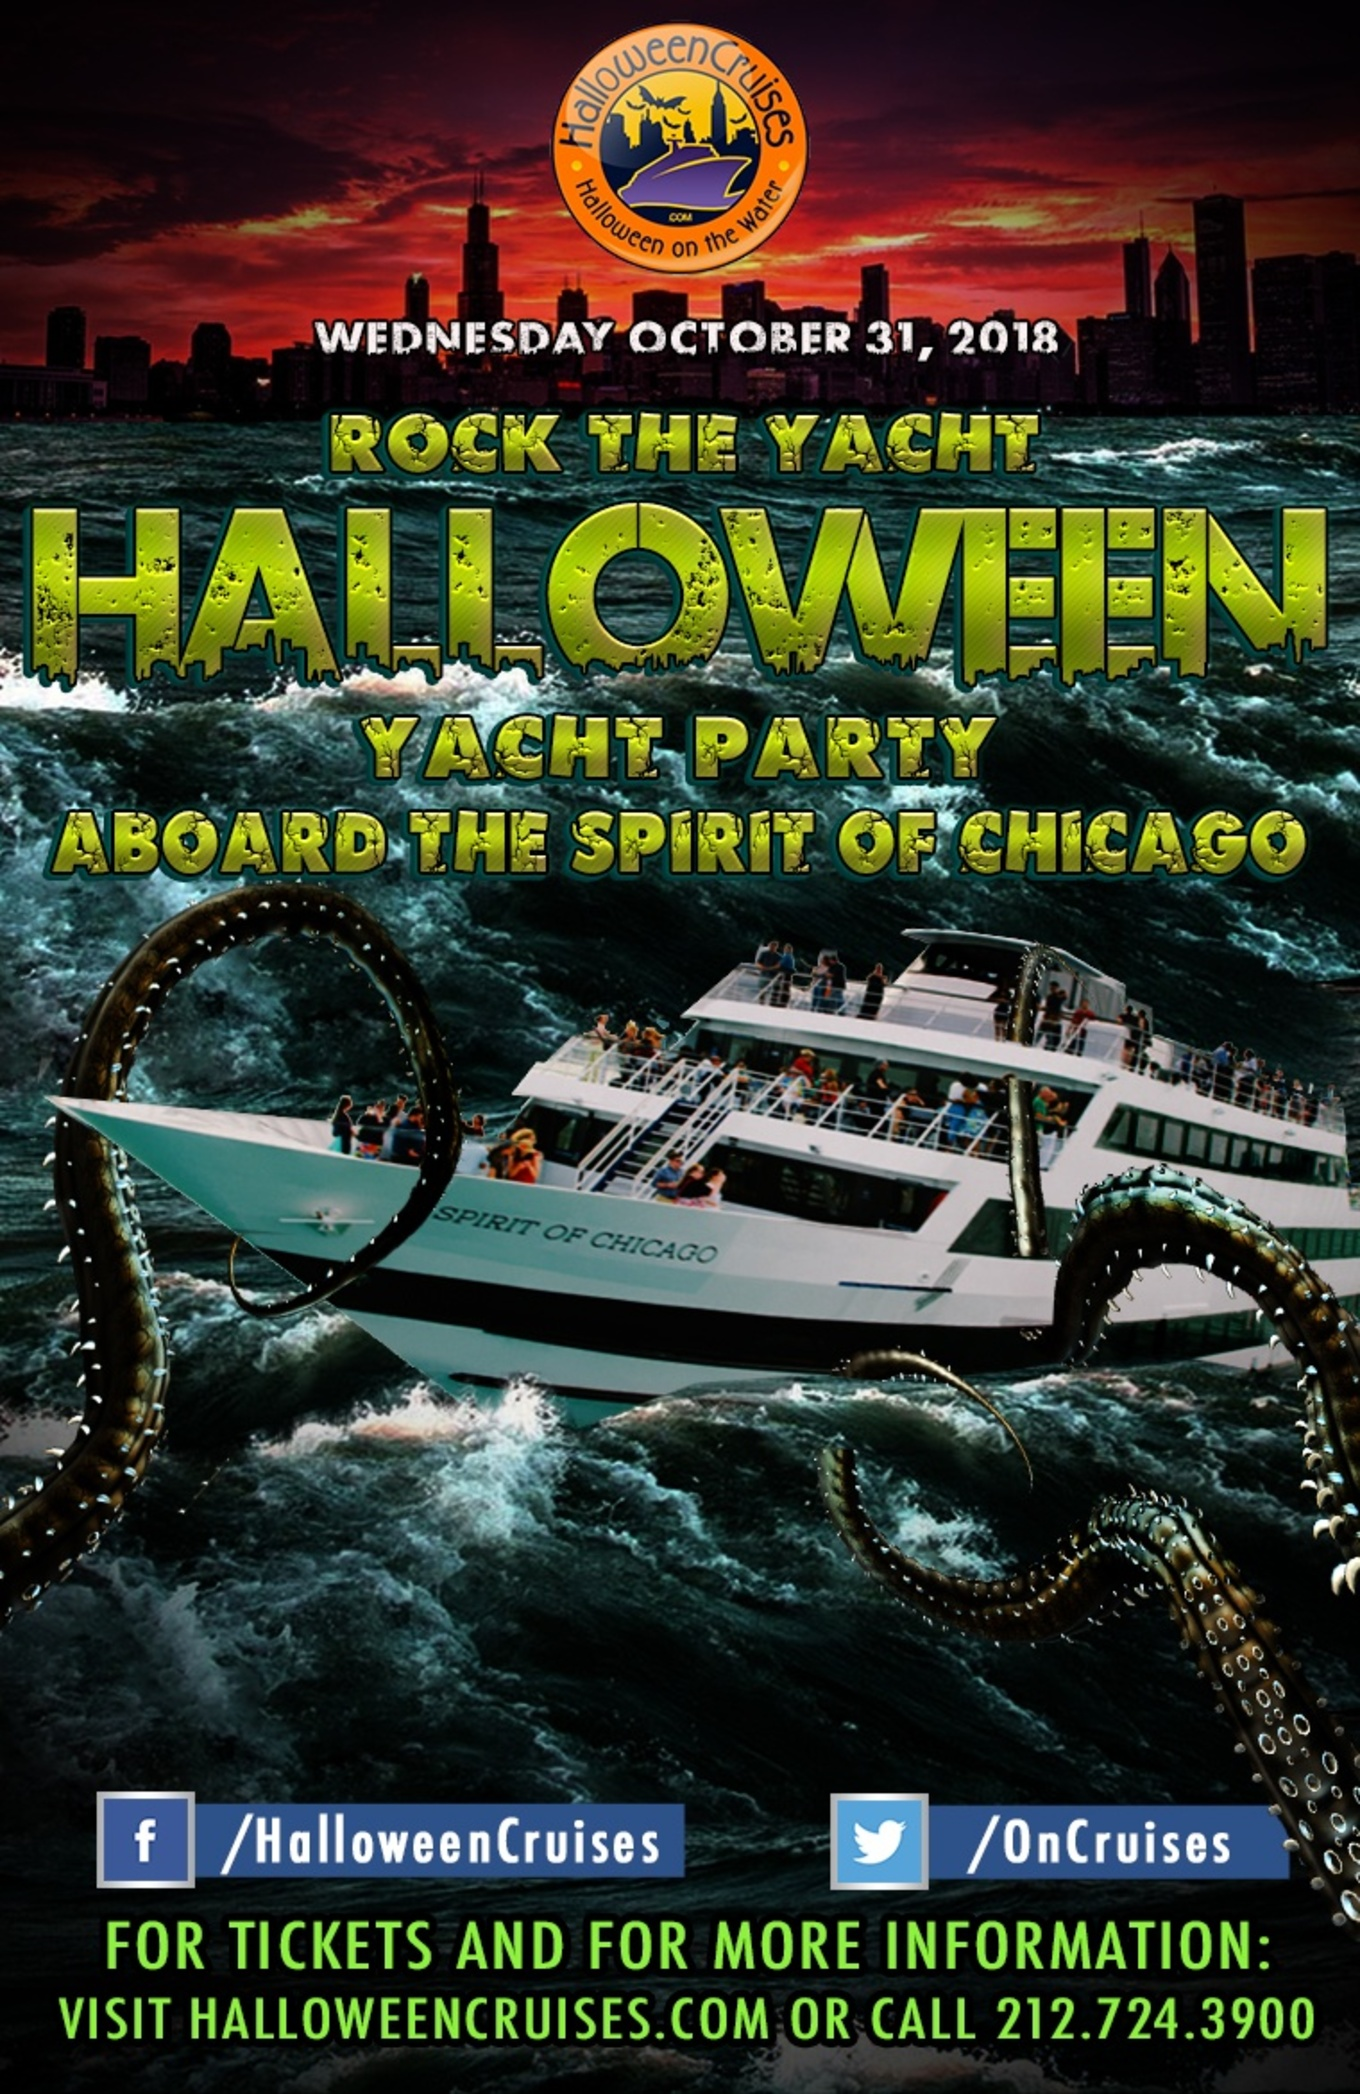 rock the yacht halloween yacht party aboard the spirit of chicago